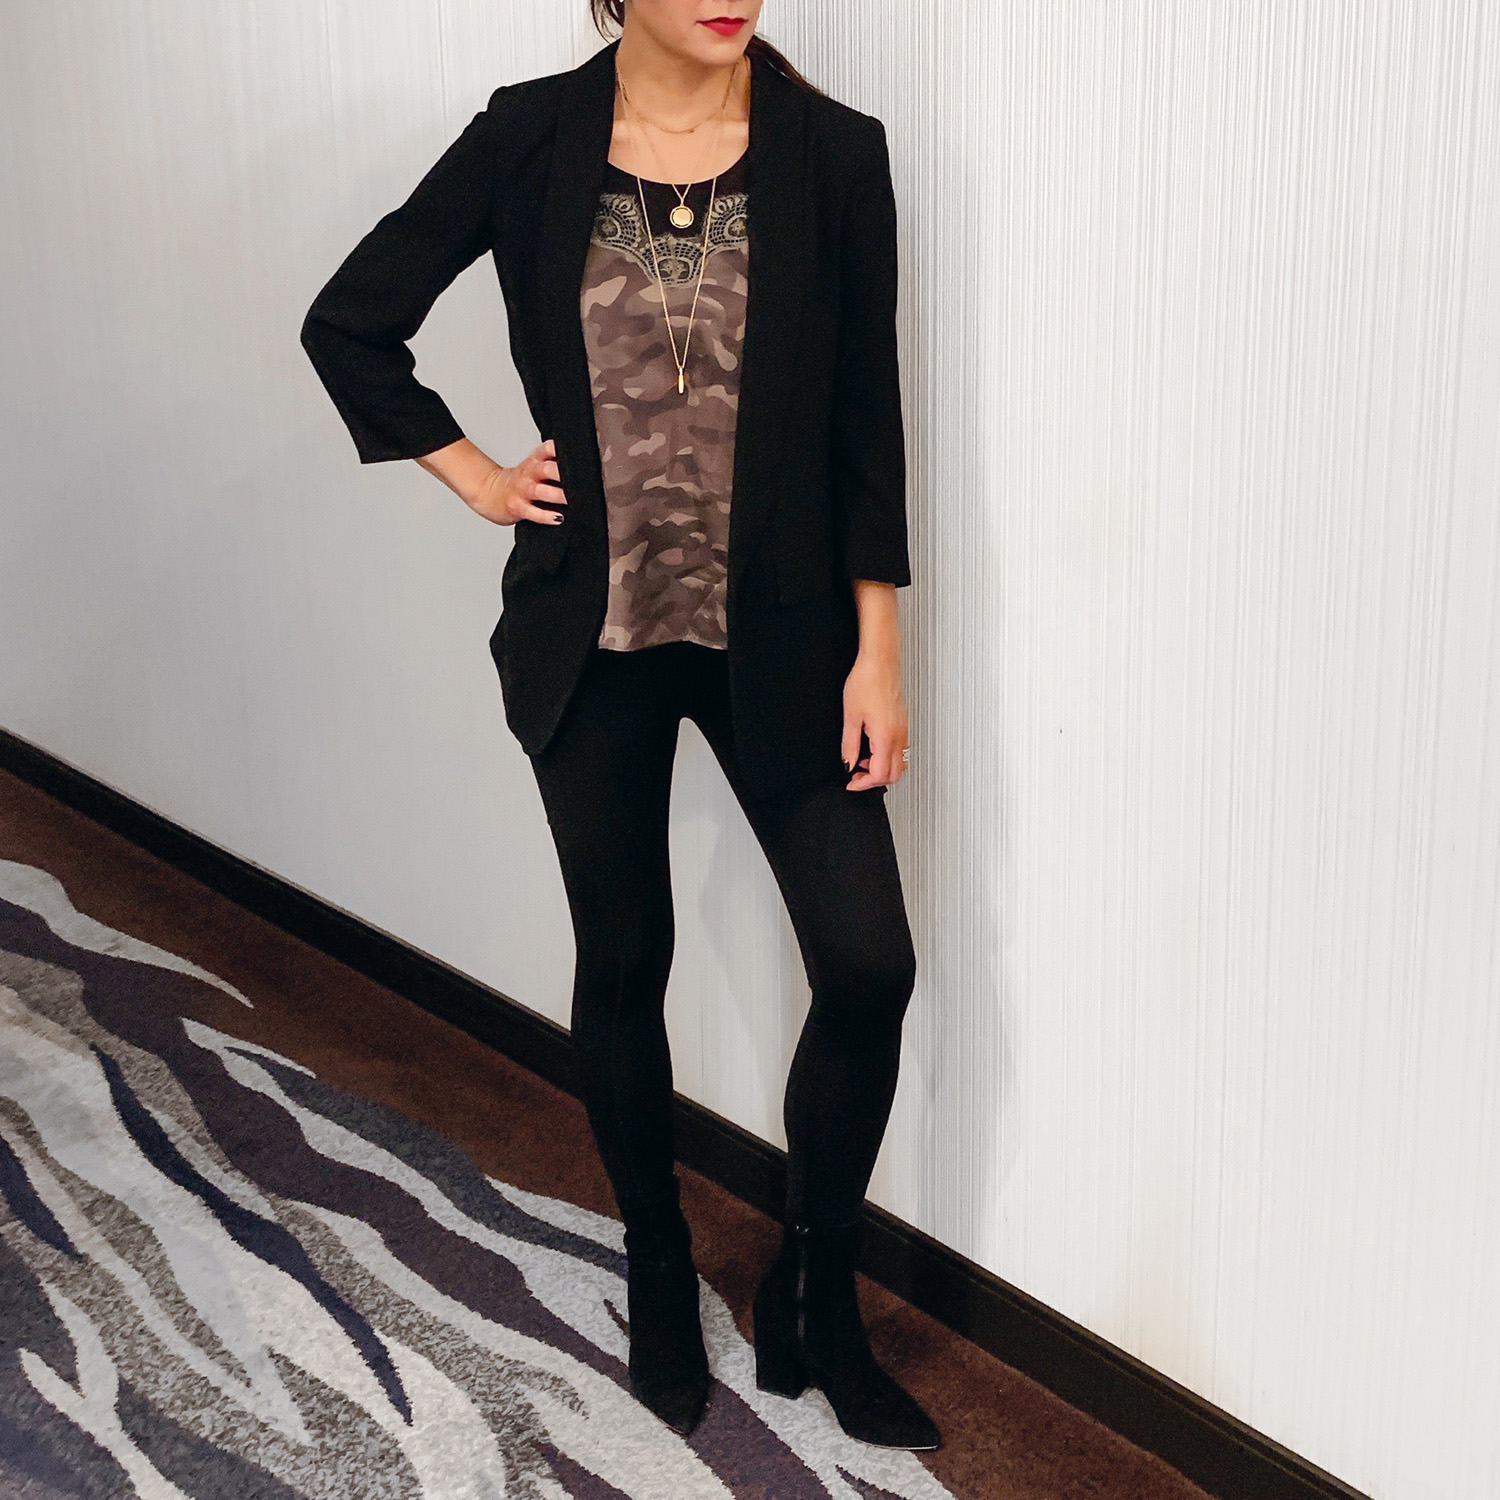 Nordstrom Blazer       Cami NYC Camisole       Spanx Arm Tights       Alexo Athletica Stealth Leggings   *      Loeffer Randal Isla Boots     *use code ALEXOSMT10 for 10% off at Alexo Athletica